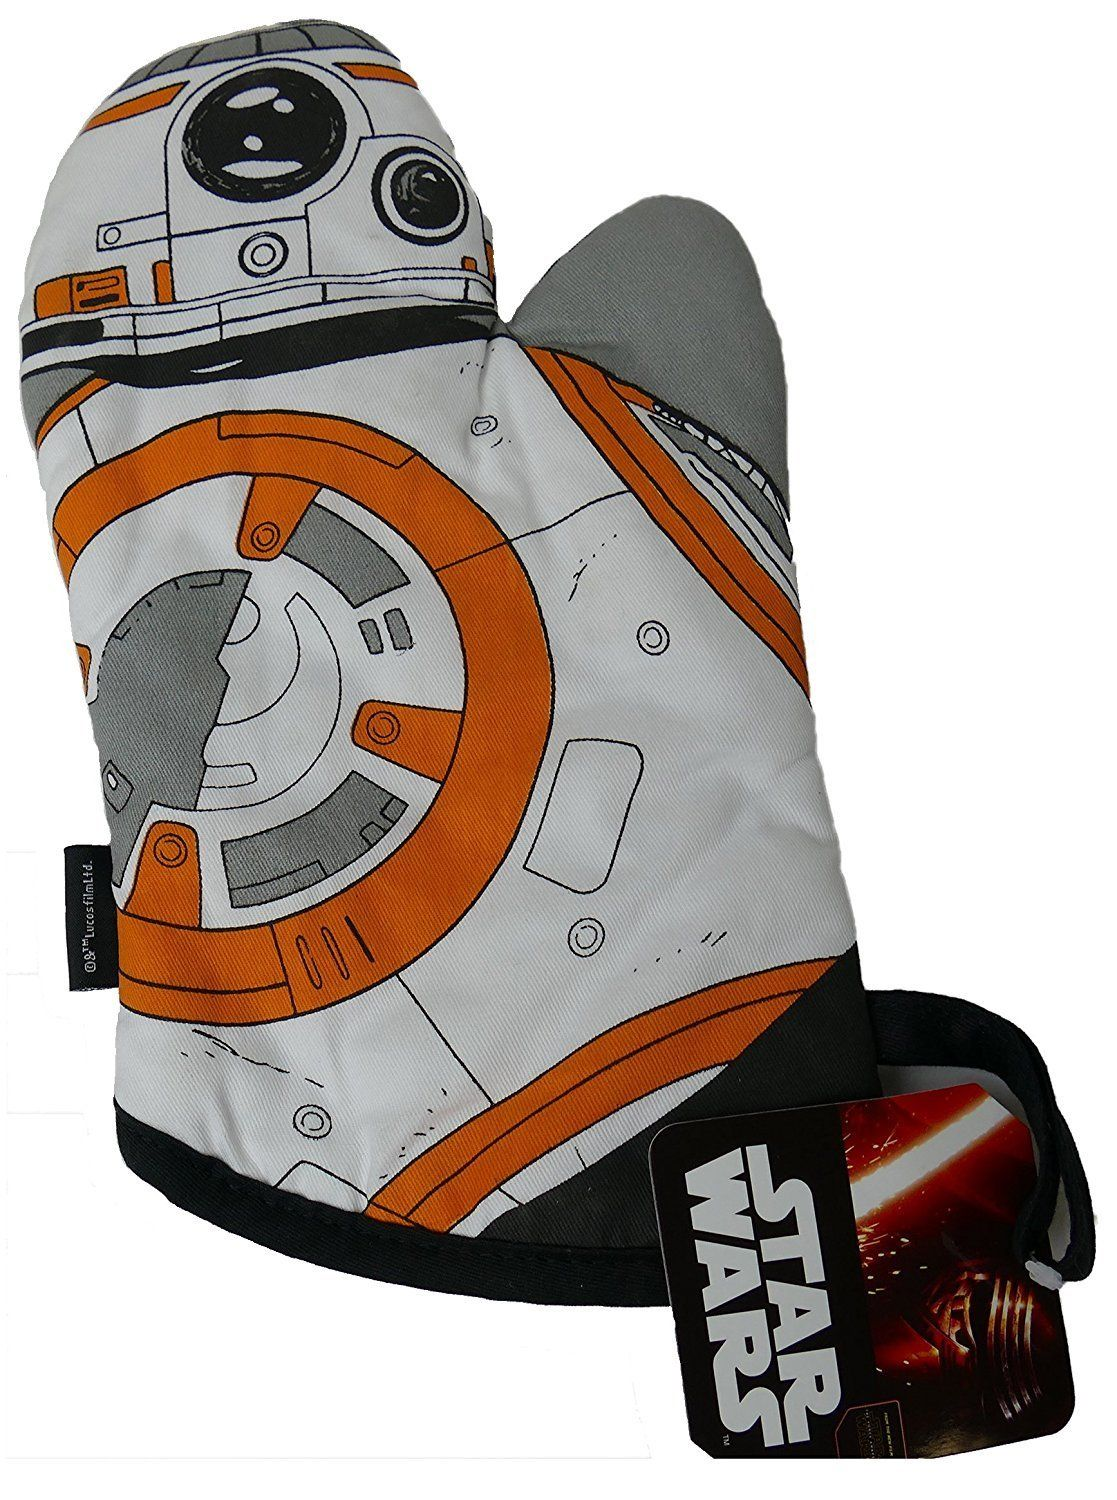 Star wars xmas gifts for her